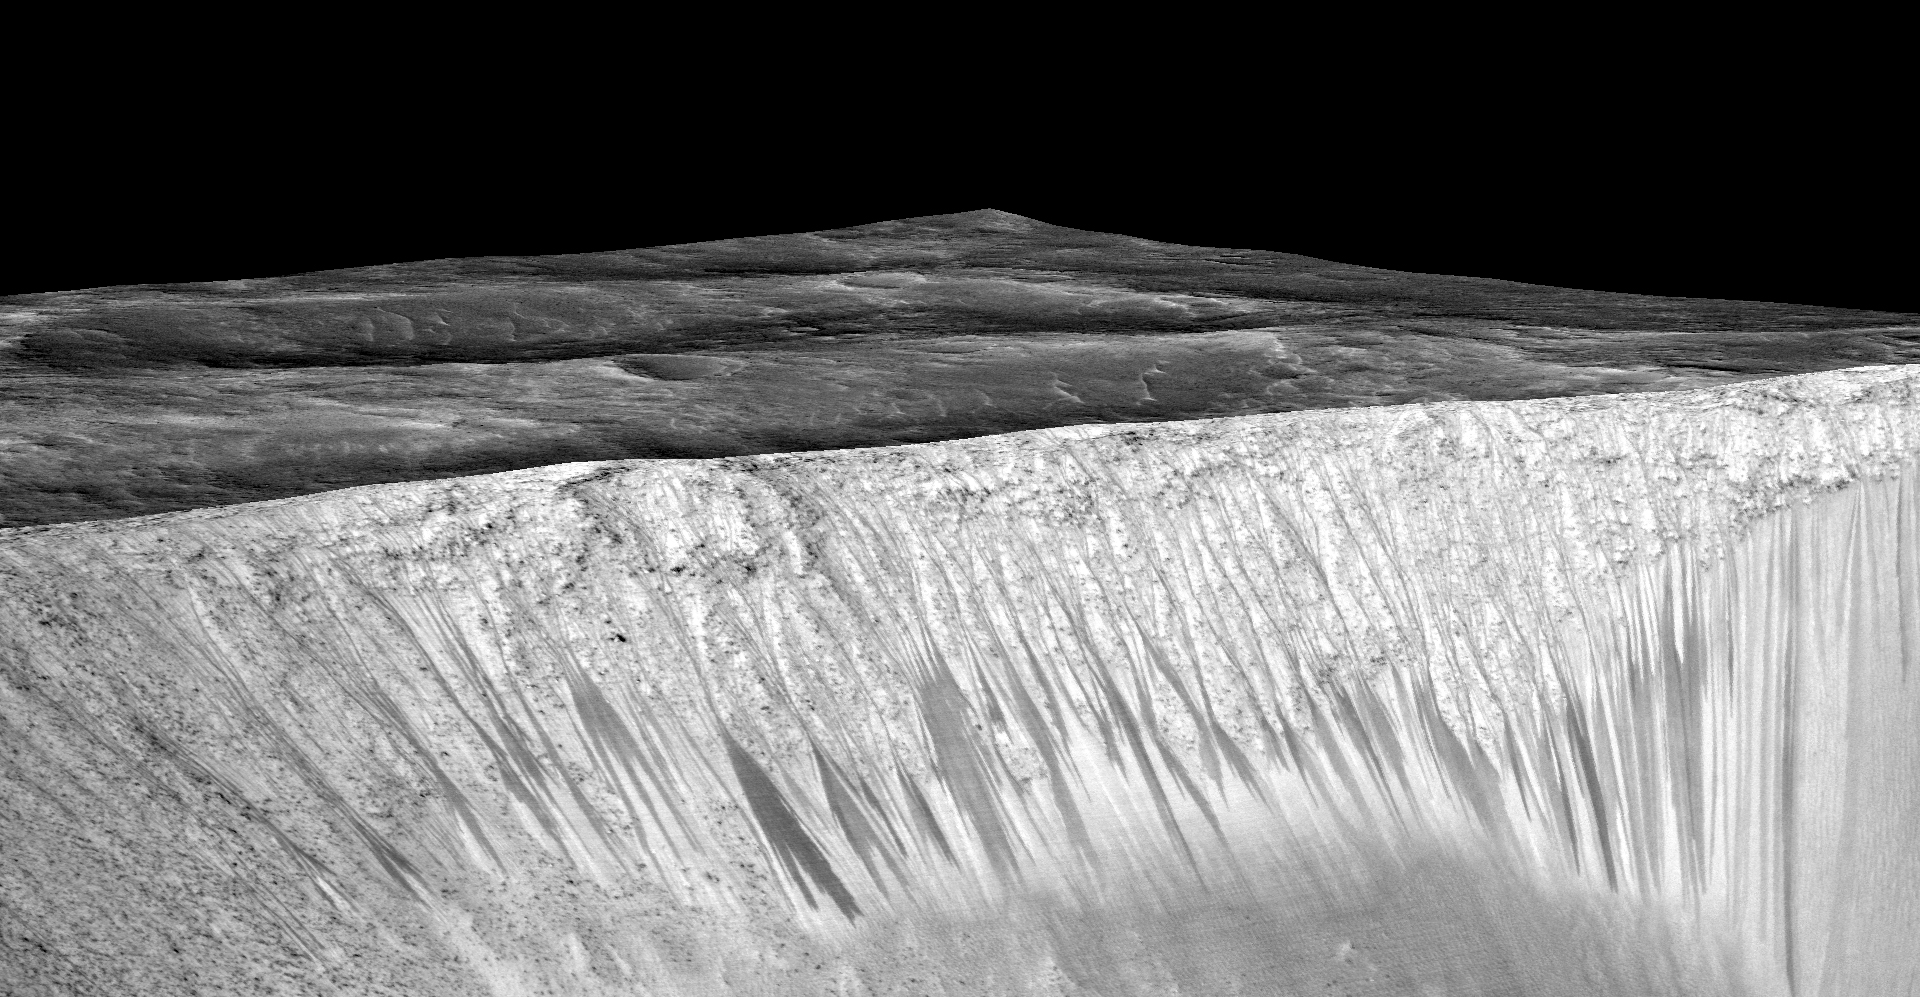 Dark narrow streaks called recurring slope lineae emanating out of the walls of Garni crater on Mars. The dark streaks here are up to few hundred meters in length. They are hypothesized to be formed by flow of briny liquid water on Mars. Credit: NASA/JPL/University of Arizona